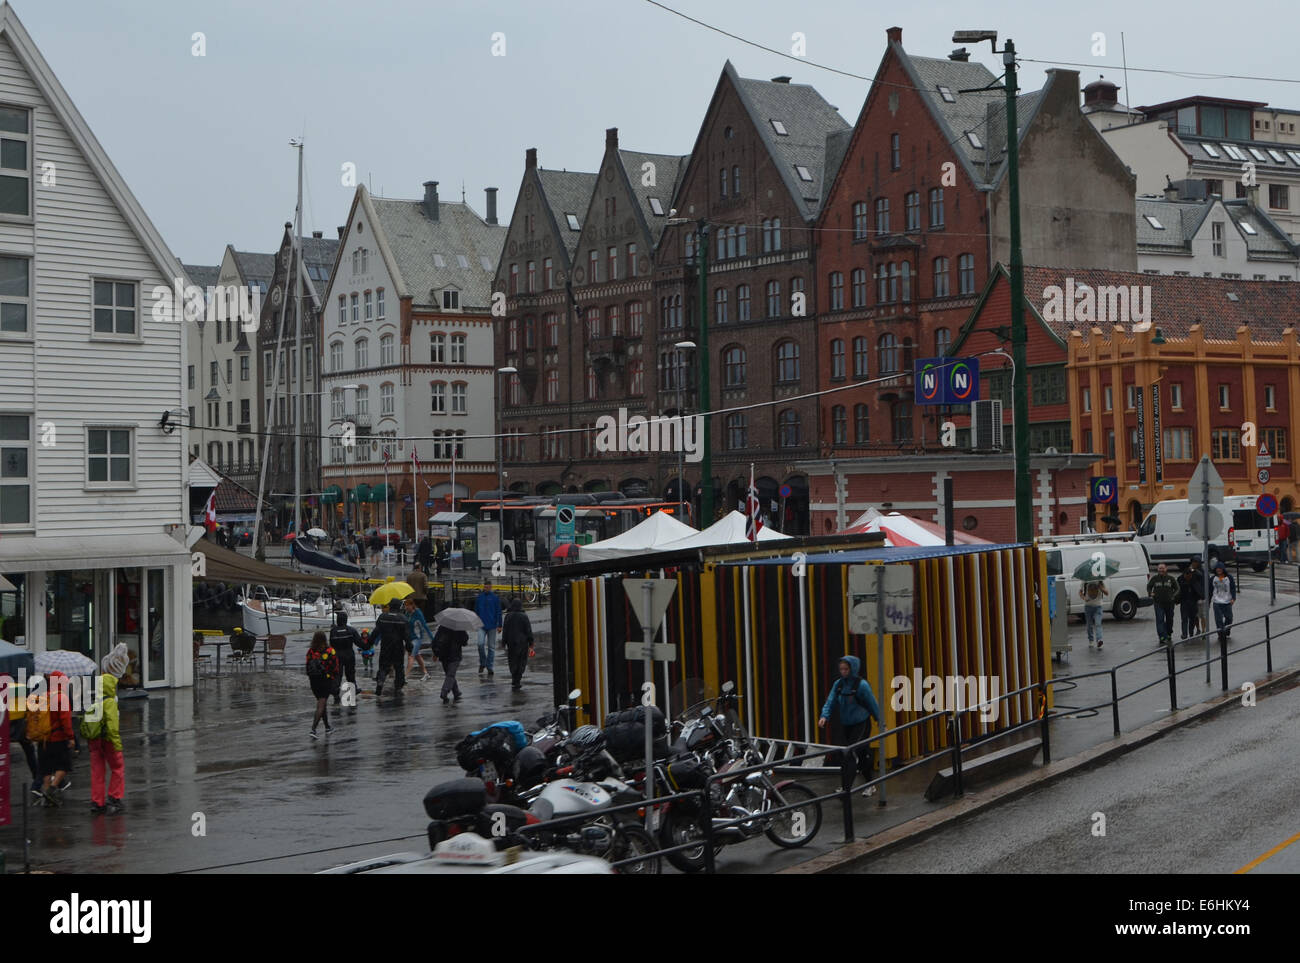 A rainy day in Bergen. It had been raining heavily all day. Umbrellas  against the rain and still you got soaking. - Stock Image